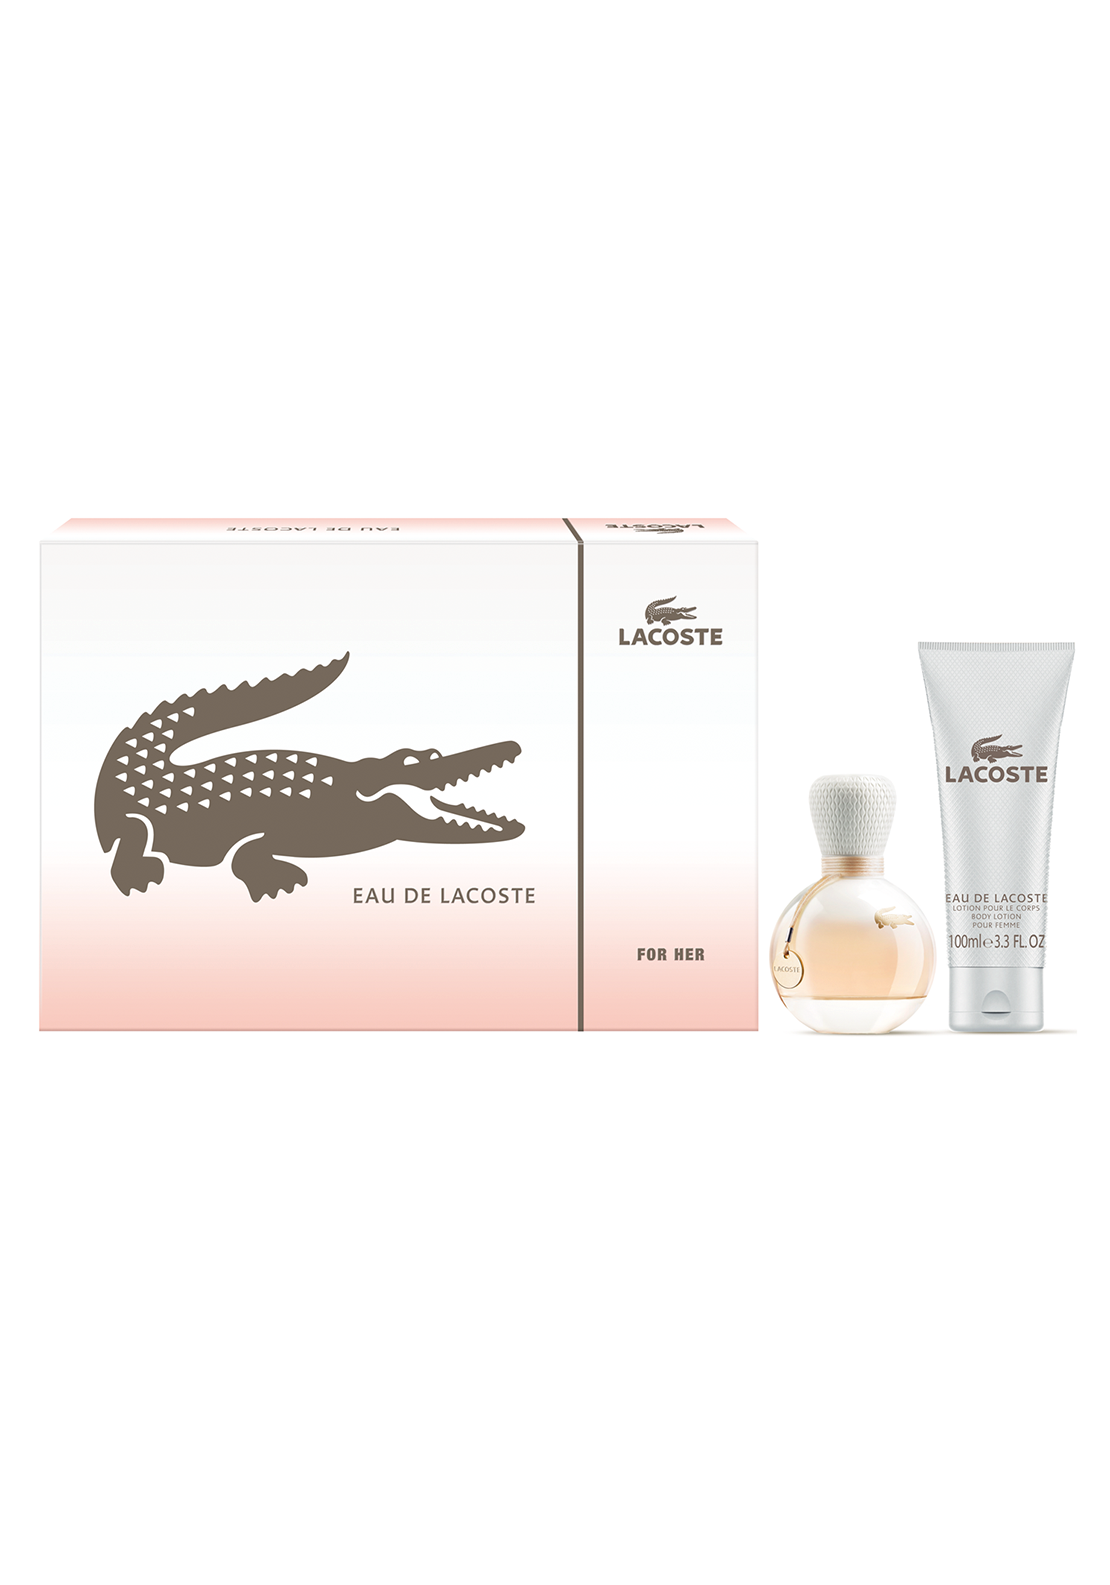 Lacoste Eau De Lacoste for Her Two Piece Gift Set